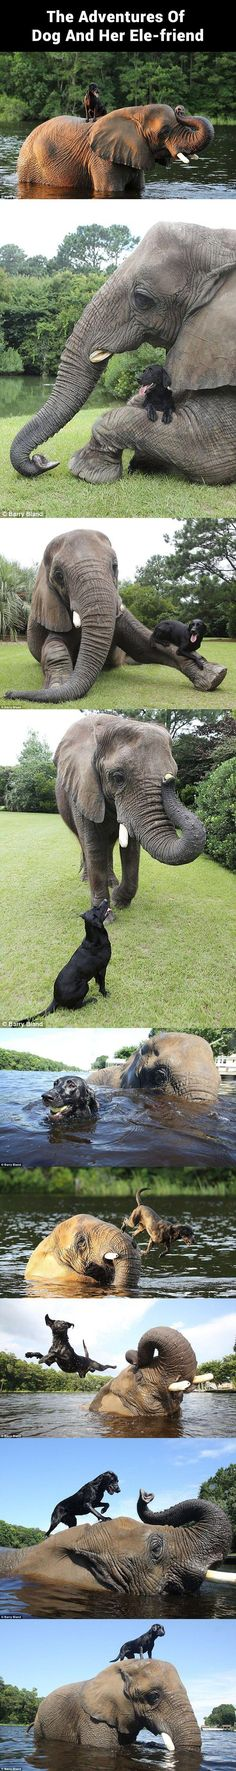 Elephant plays fetch with her puppy pal! This makes me so happy!